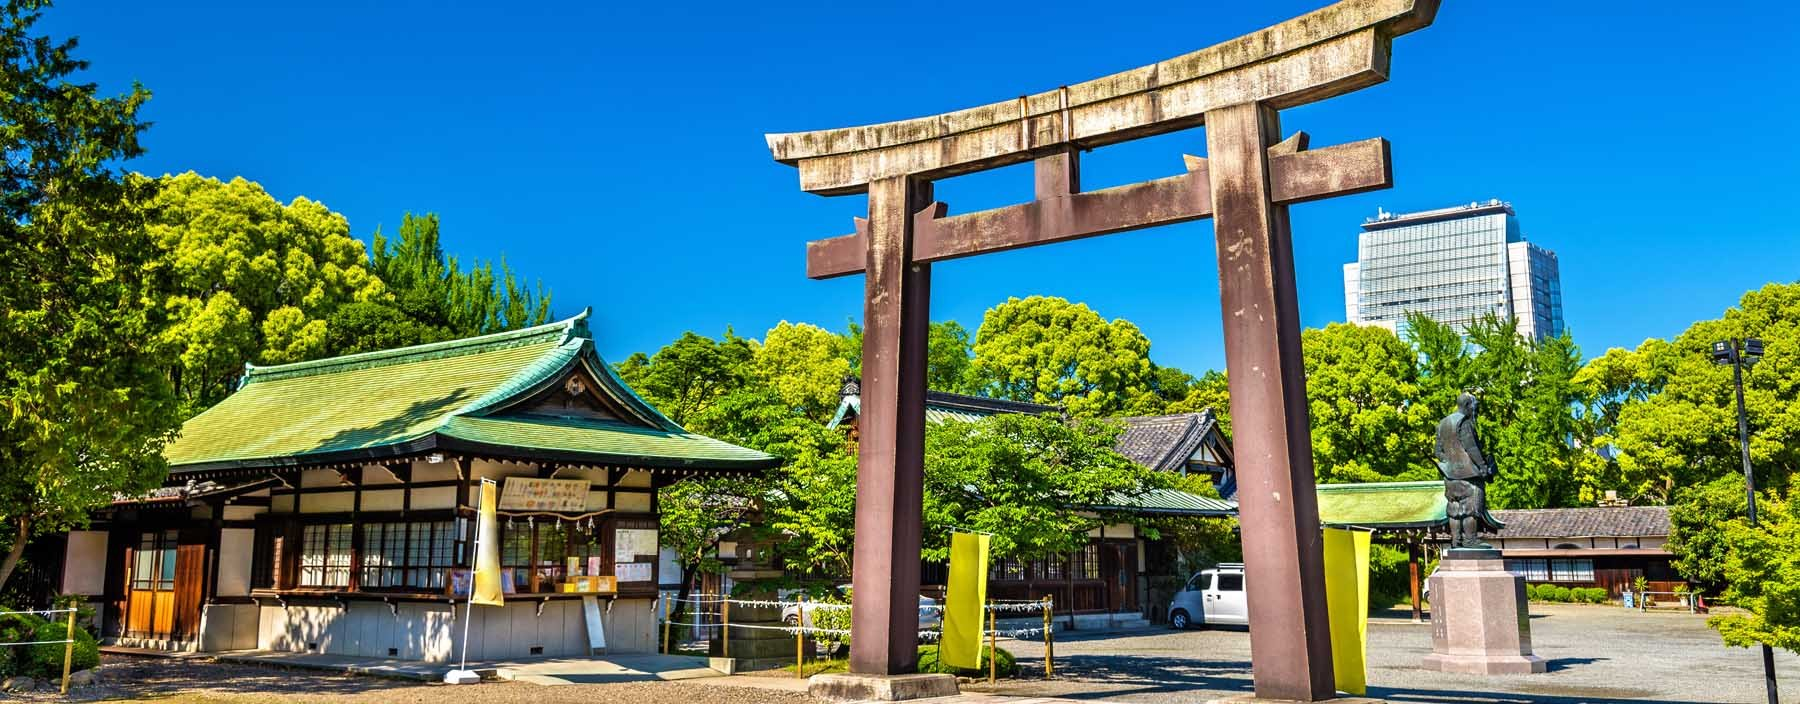 jp, osaka, gate of hokoku shrine.jpg